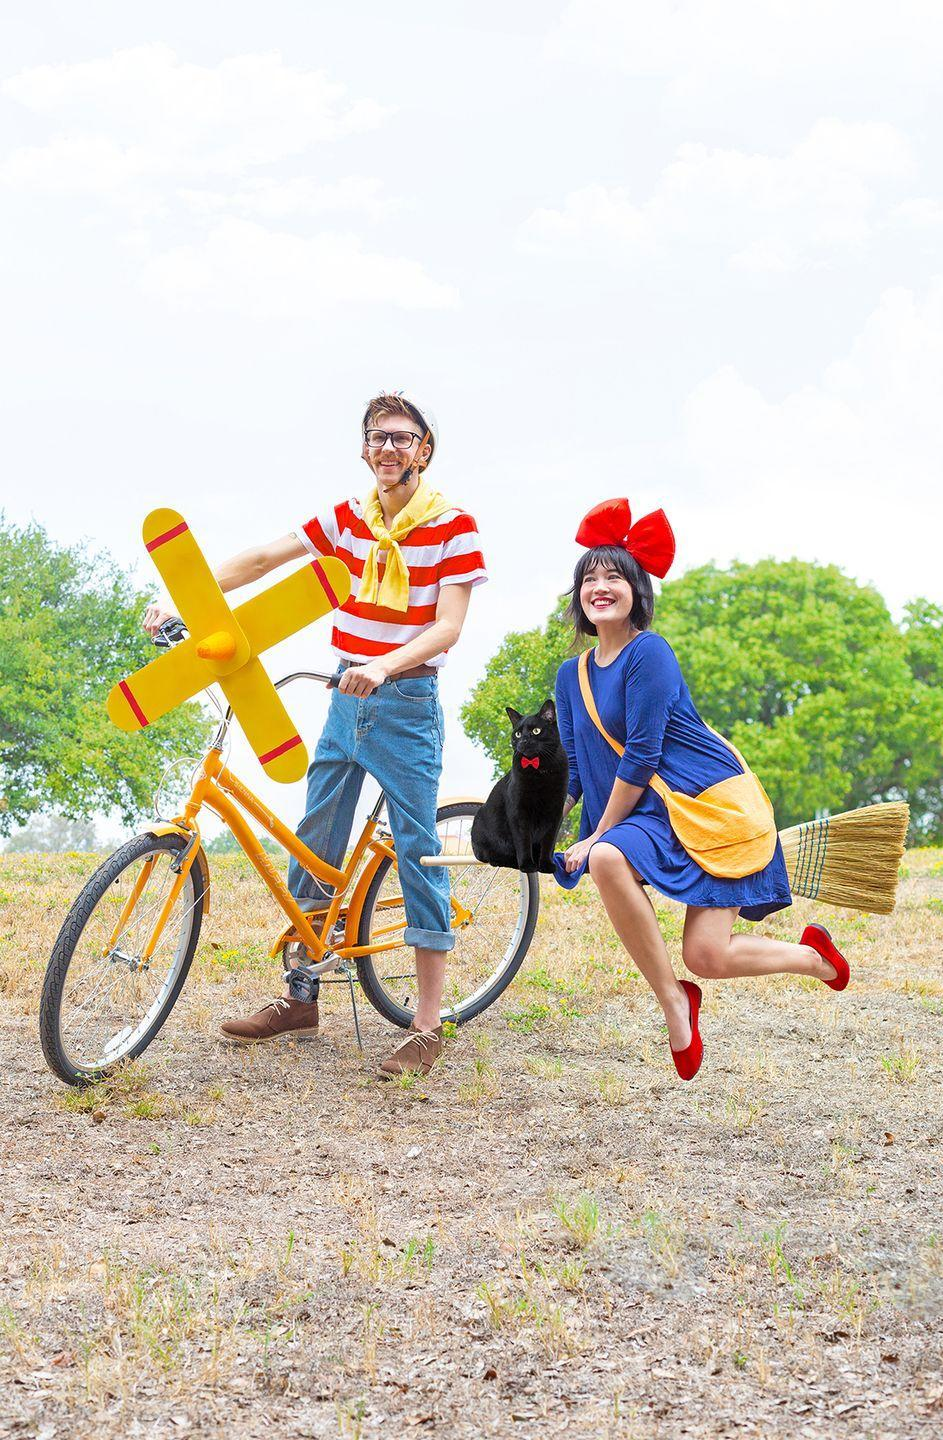 """<p>Love Studio Ghibli films? This adorable costume idea has you dressing up as Kiki from <em><a href=""""https://www.amazon.com/Kikis-Delivery-Service-English-Language/dp/B0812B2MQ9?tag=syn-yahoo-20&ascsubtag=%5Bartid%7C10055.g.34292032%5Bsrc%7Cyahoo-us"""" rel=""""nofollow noopener"""" target=""""_blank"""" data-ylk=""""slk:Kiki's Delivery Service"""" class=""""link rapid-noclick-resp"""">Kiki's Delivery Service</a></em>, complete with her signature blue dress and red bow. (Bonus points if you have a broomstick and a black cat, too!)</p><p><em><a href=""""http://www.awwsam.com/2019/10/kikis-delivery-service-costumes.html"""" rel=""""nofollow noopener"""" target=""""_blank"""" data-ylk=""""slk:Get the tutorial at Aww Sam »"""" class=""""link rapid-noclick-resp"""">Get the tutorial at Aww Sam »</a></em></p>"""